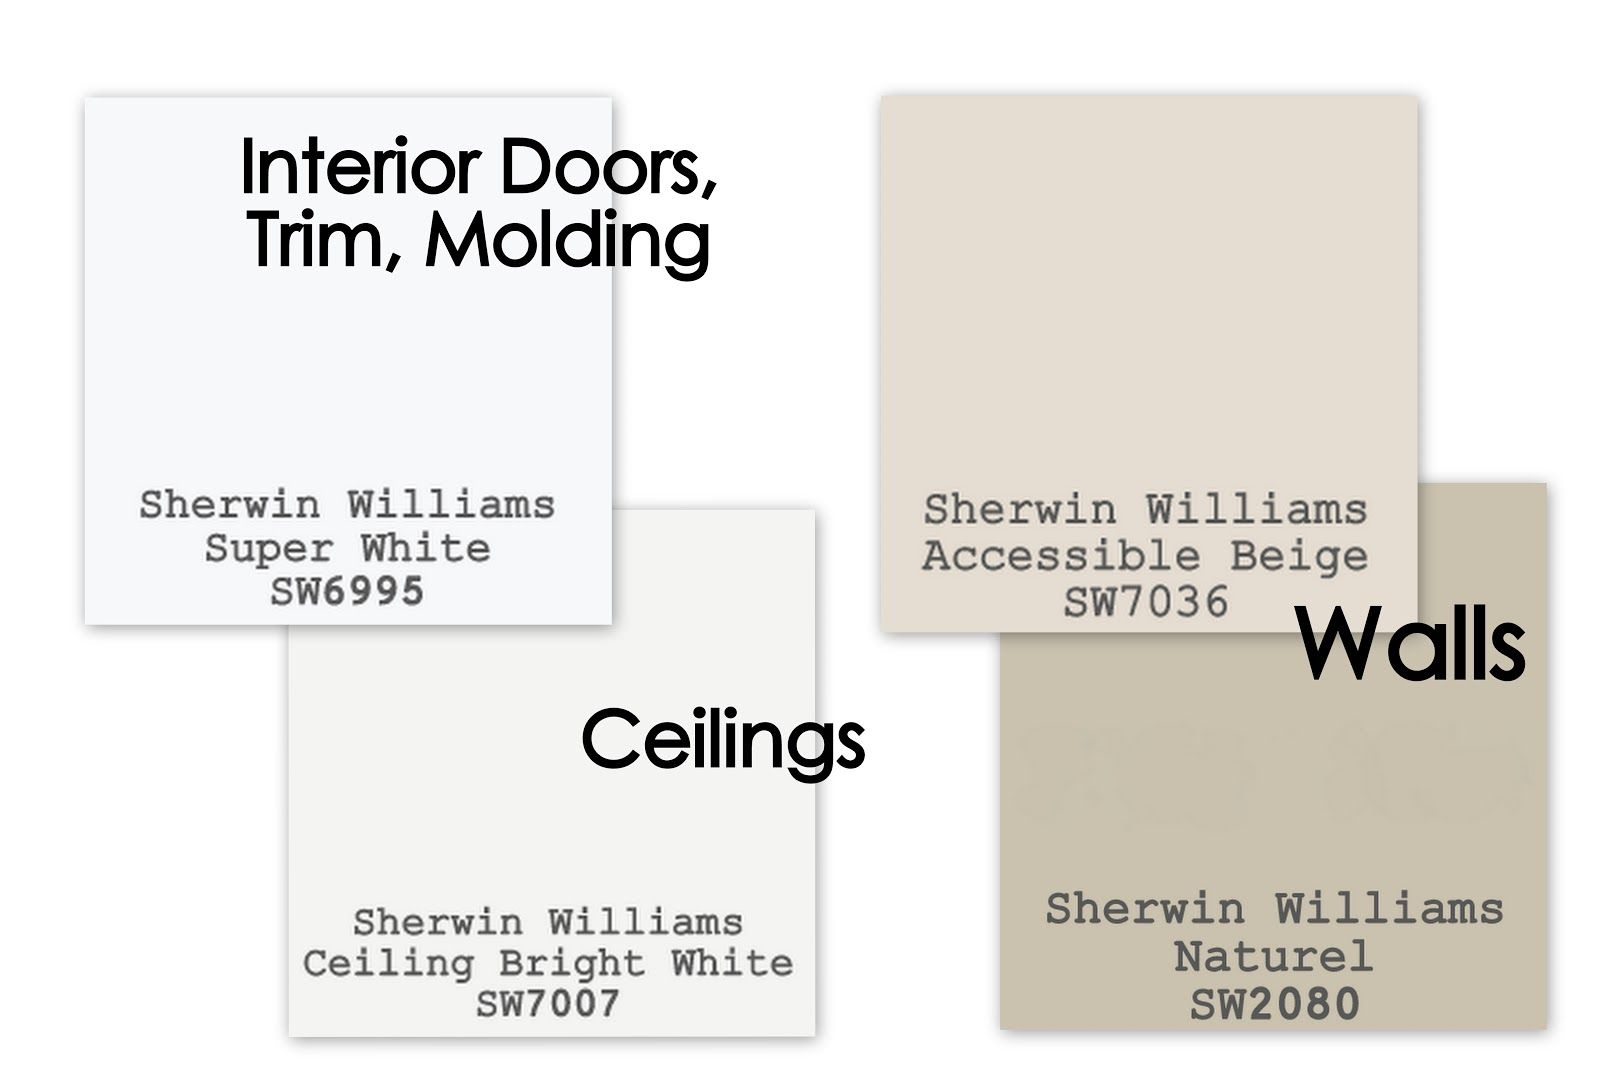 Paint Colors To Your Home For Walls I Use Sherwin Williams Accessible Beige Or Naturel In Eggshell Finish